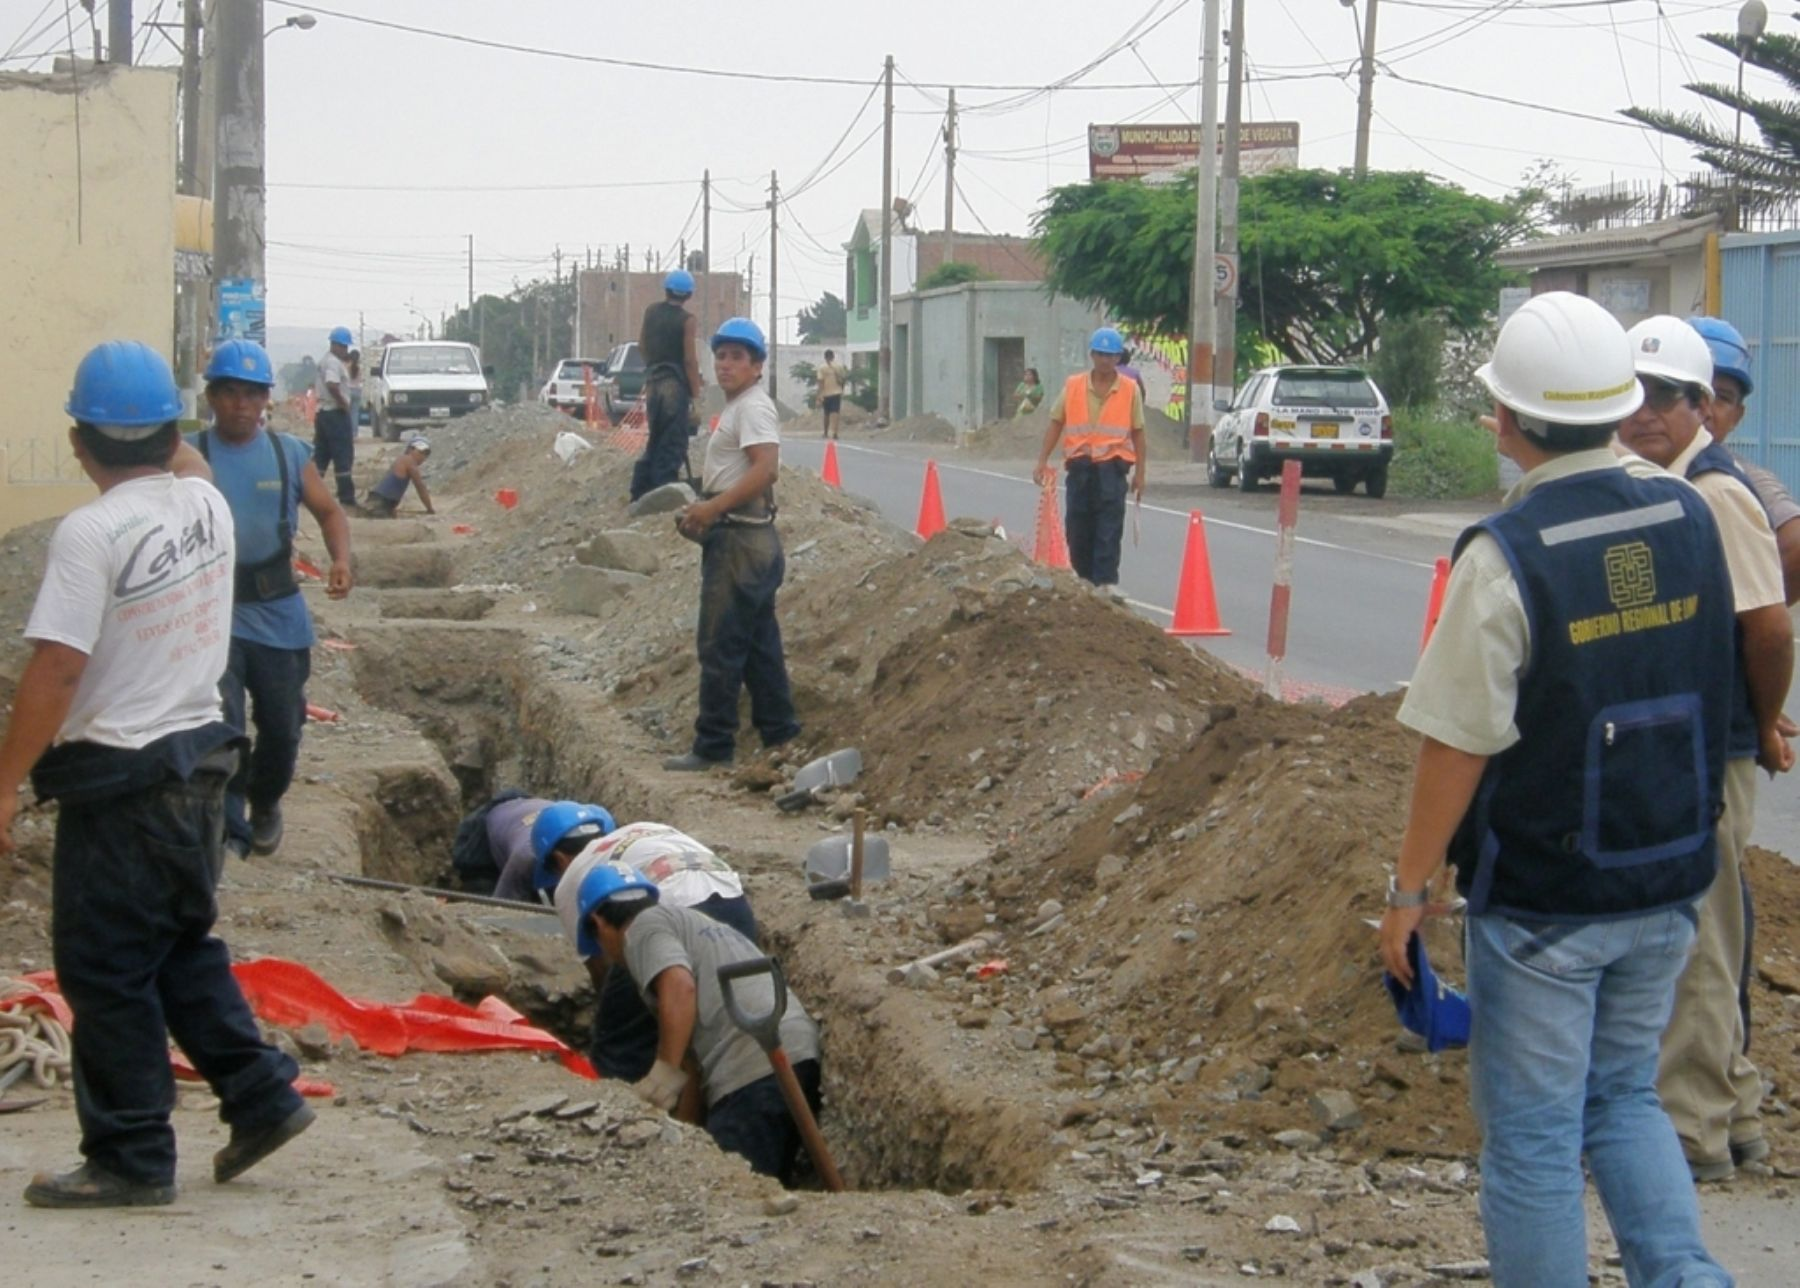 Sanitation works in the province of Huaura (Lima). Photo: ANDINA.